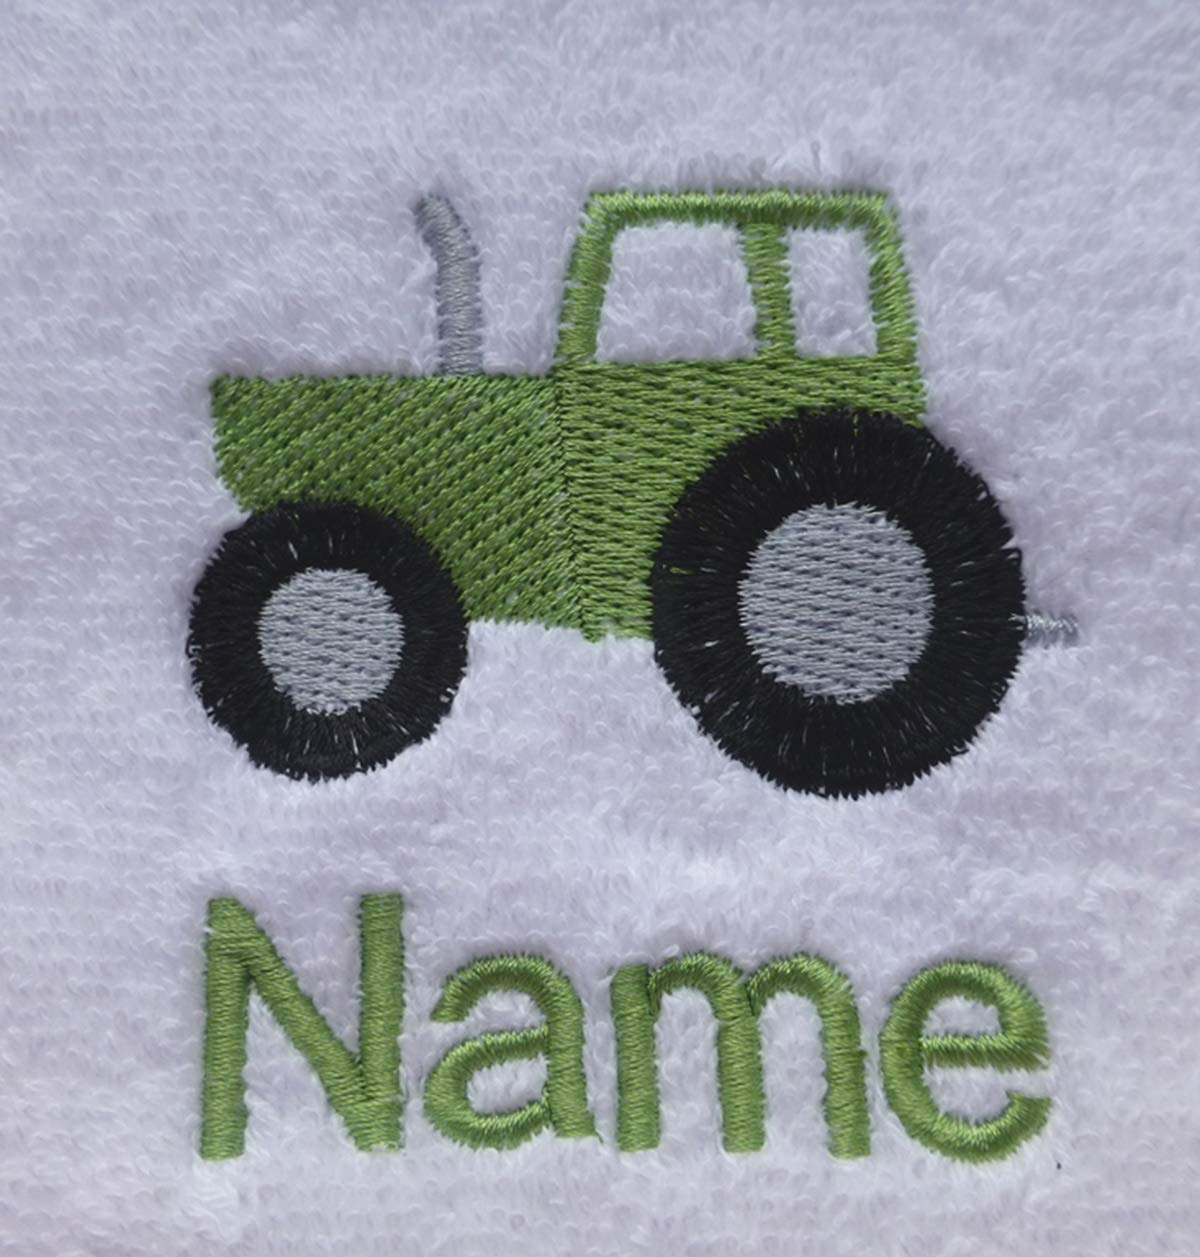 Hooded Towel 0-5 years EFY White Baby Hooded Bath Robe or White Hooded Towel with a TRACTOR Logo and Name of your choice.